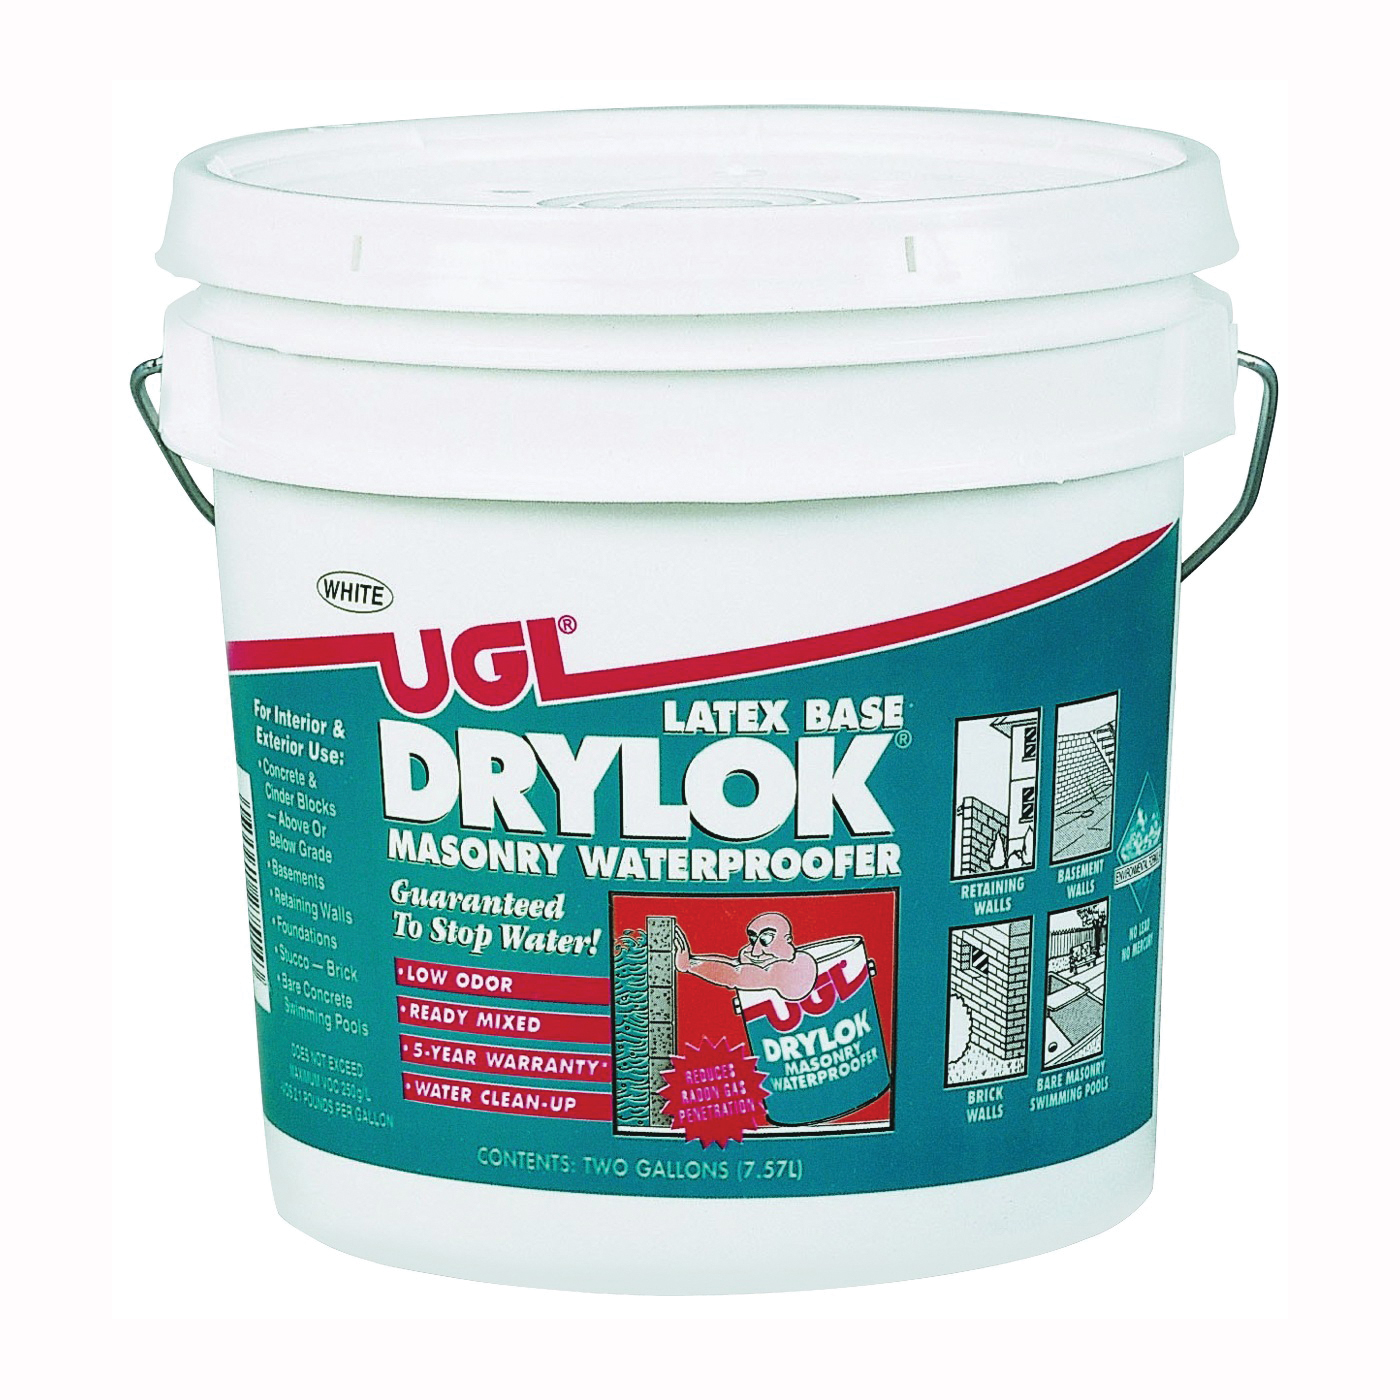 Picture of UGL DRYLOK 27514 Masonry Waterproofer, White, Liquid, 2 gal Package, Pail